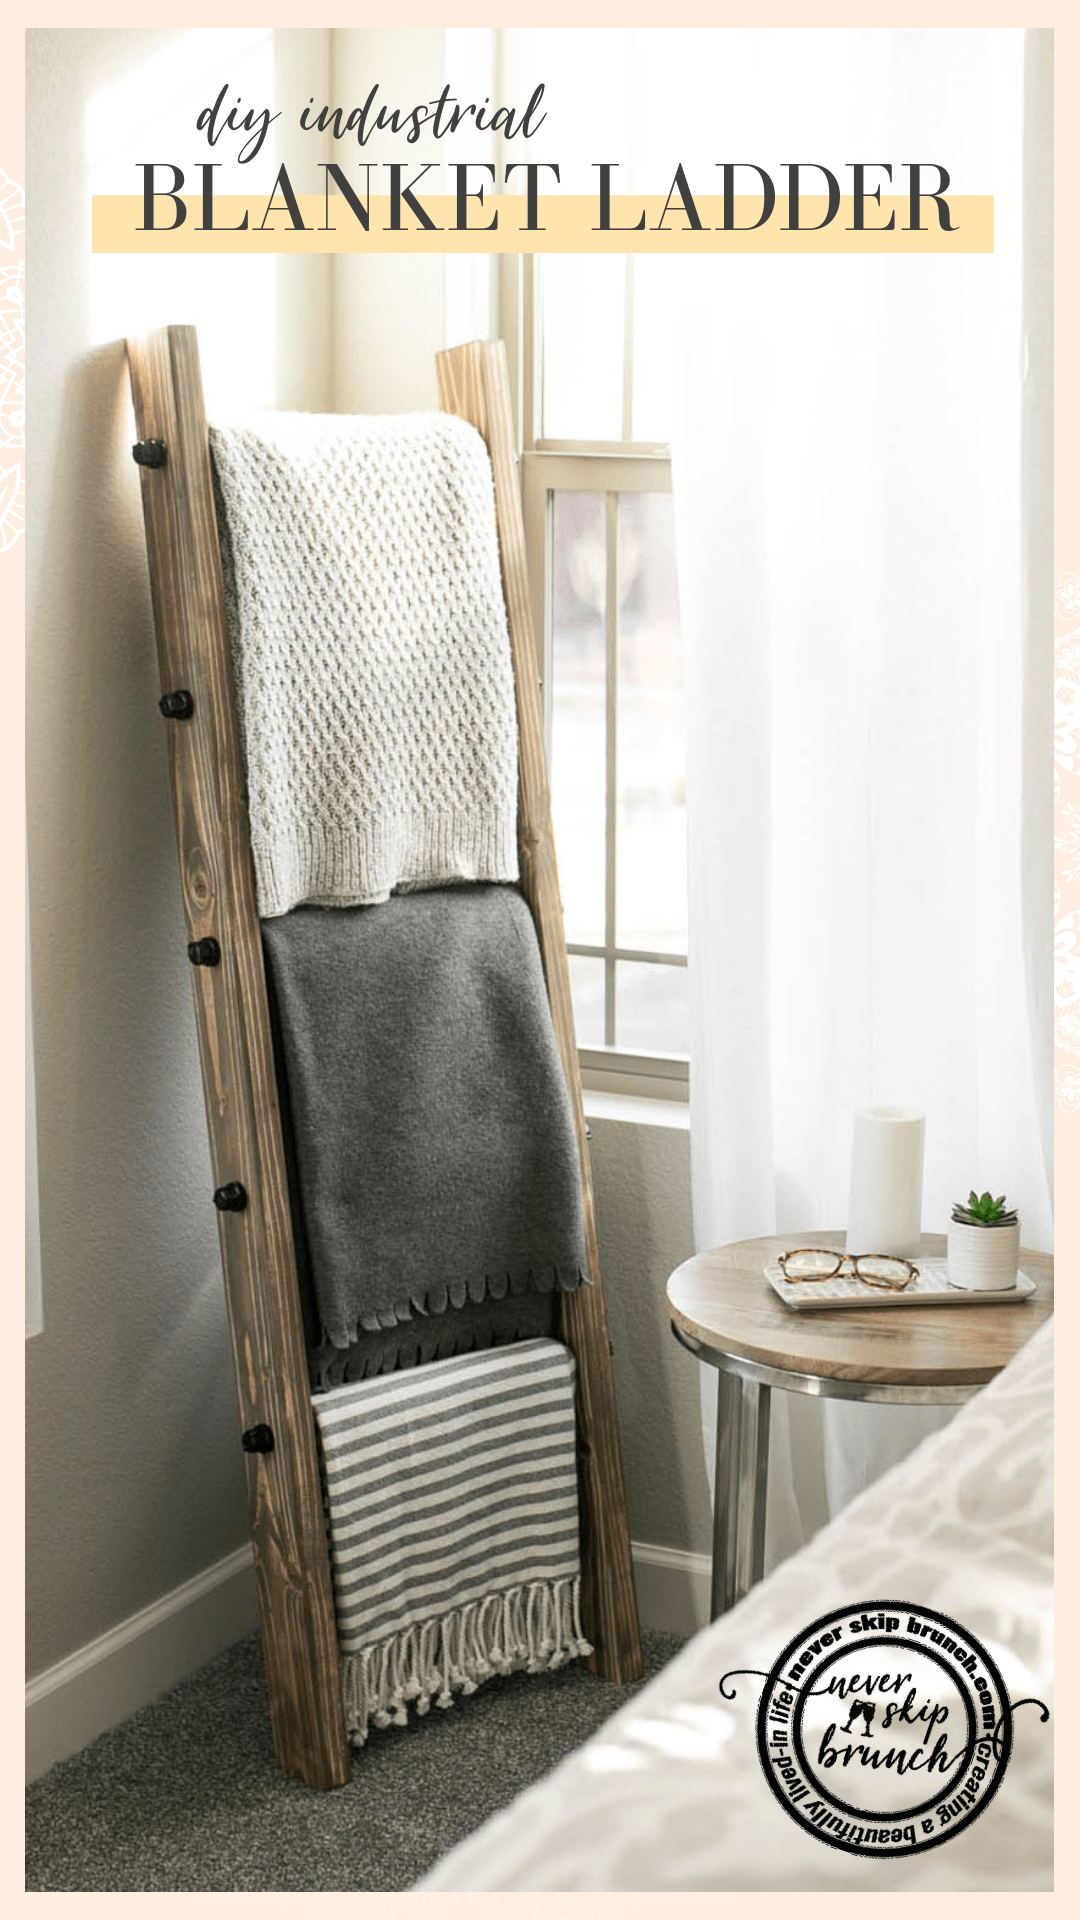 Oh my gosh this is so easy and adorable!! DIY blanket ladder | How to make a blanket ladder | industrial blanket ladder | industrial home decor | blanket ladder living room | blanket ladder modern | #DIY #Home #denver #neverskipbrunch | Never Skip Brunch by Cara Newhart